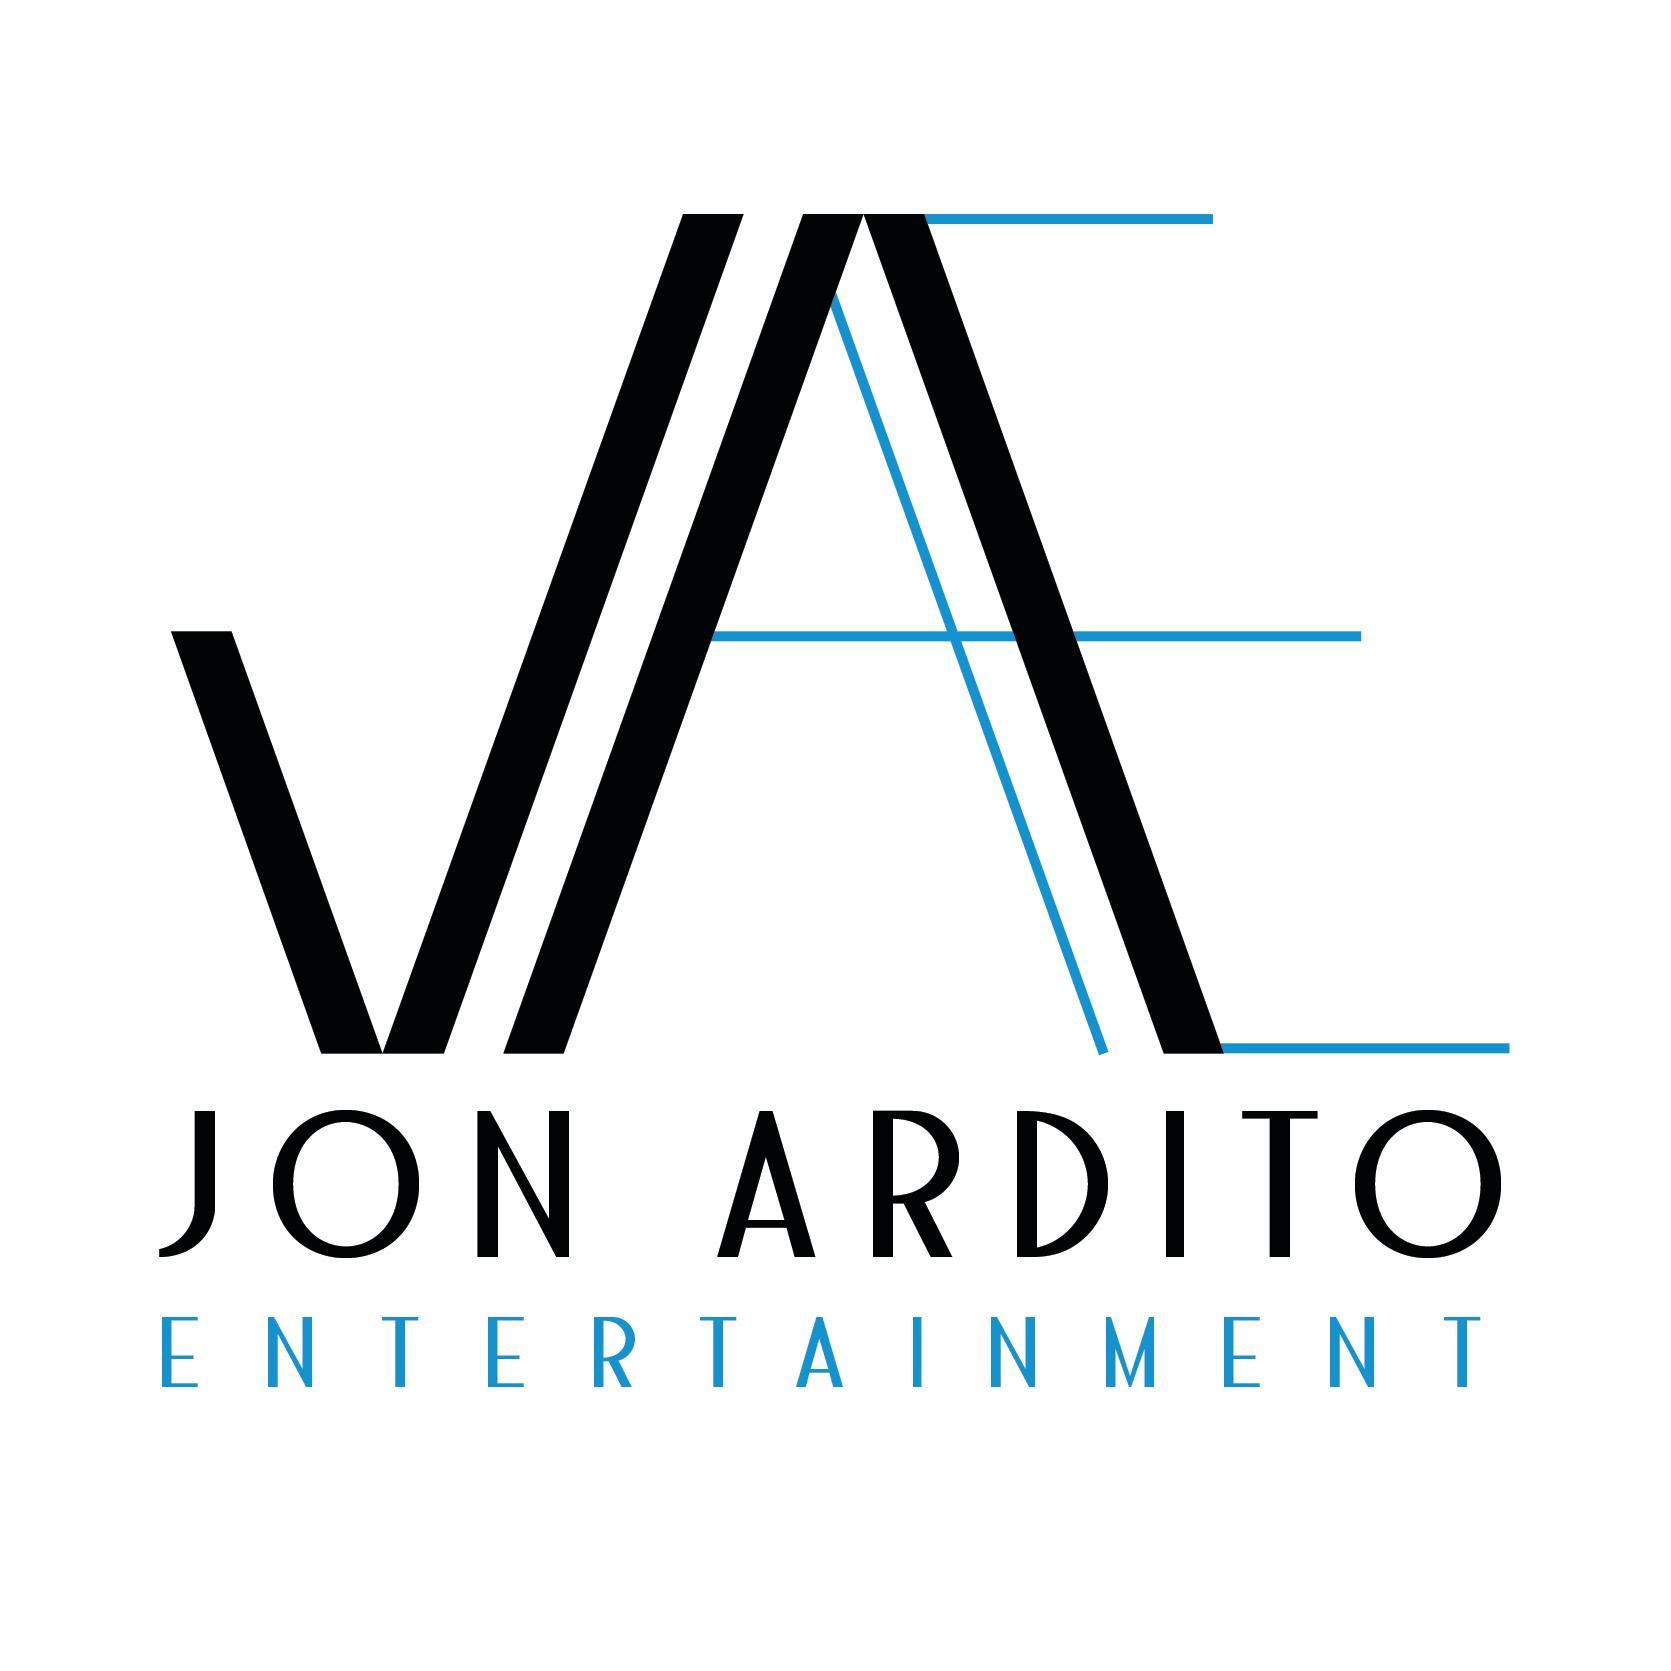 Jon Ardito Entertainment - Philadelphia Wedding Bands and DJs